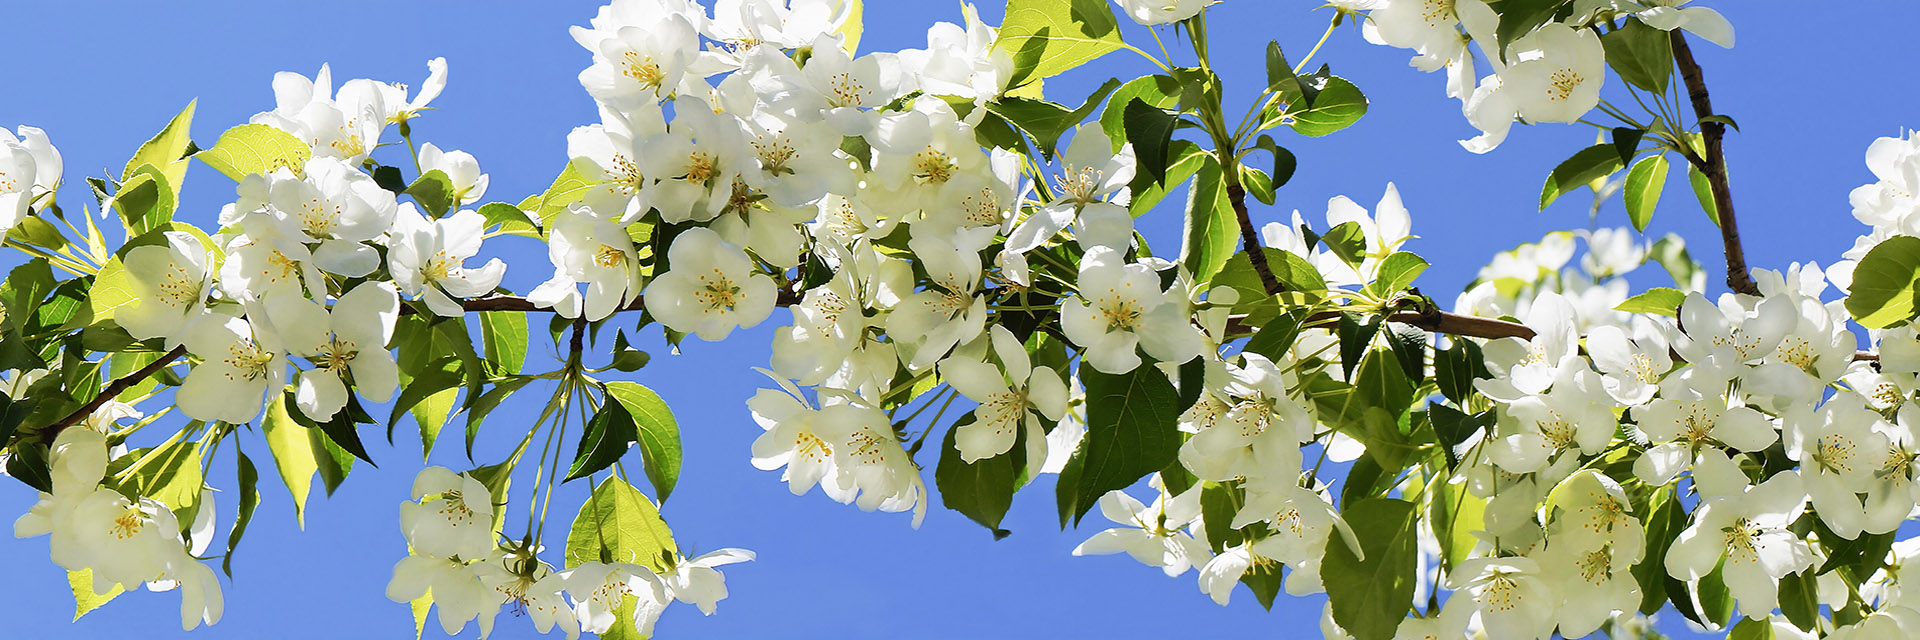 branch of white apple blossoms on blue sky